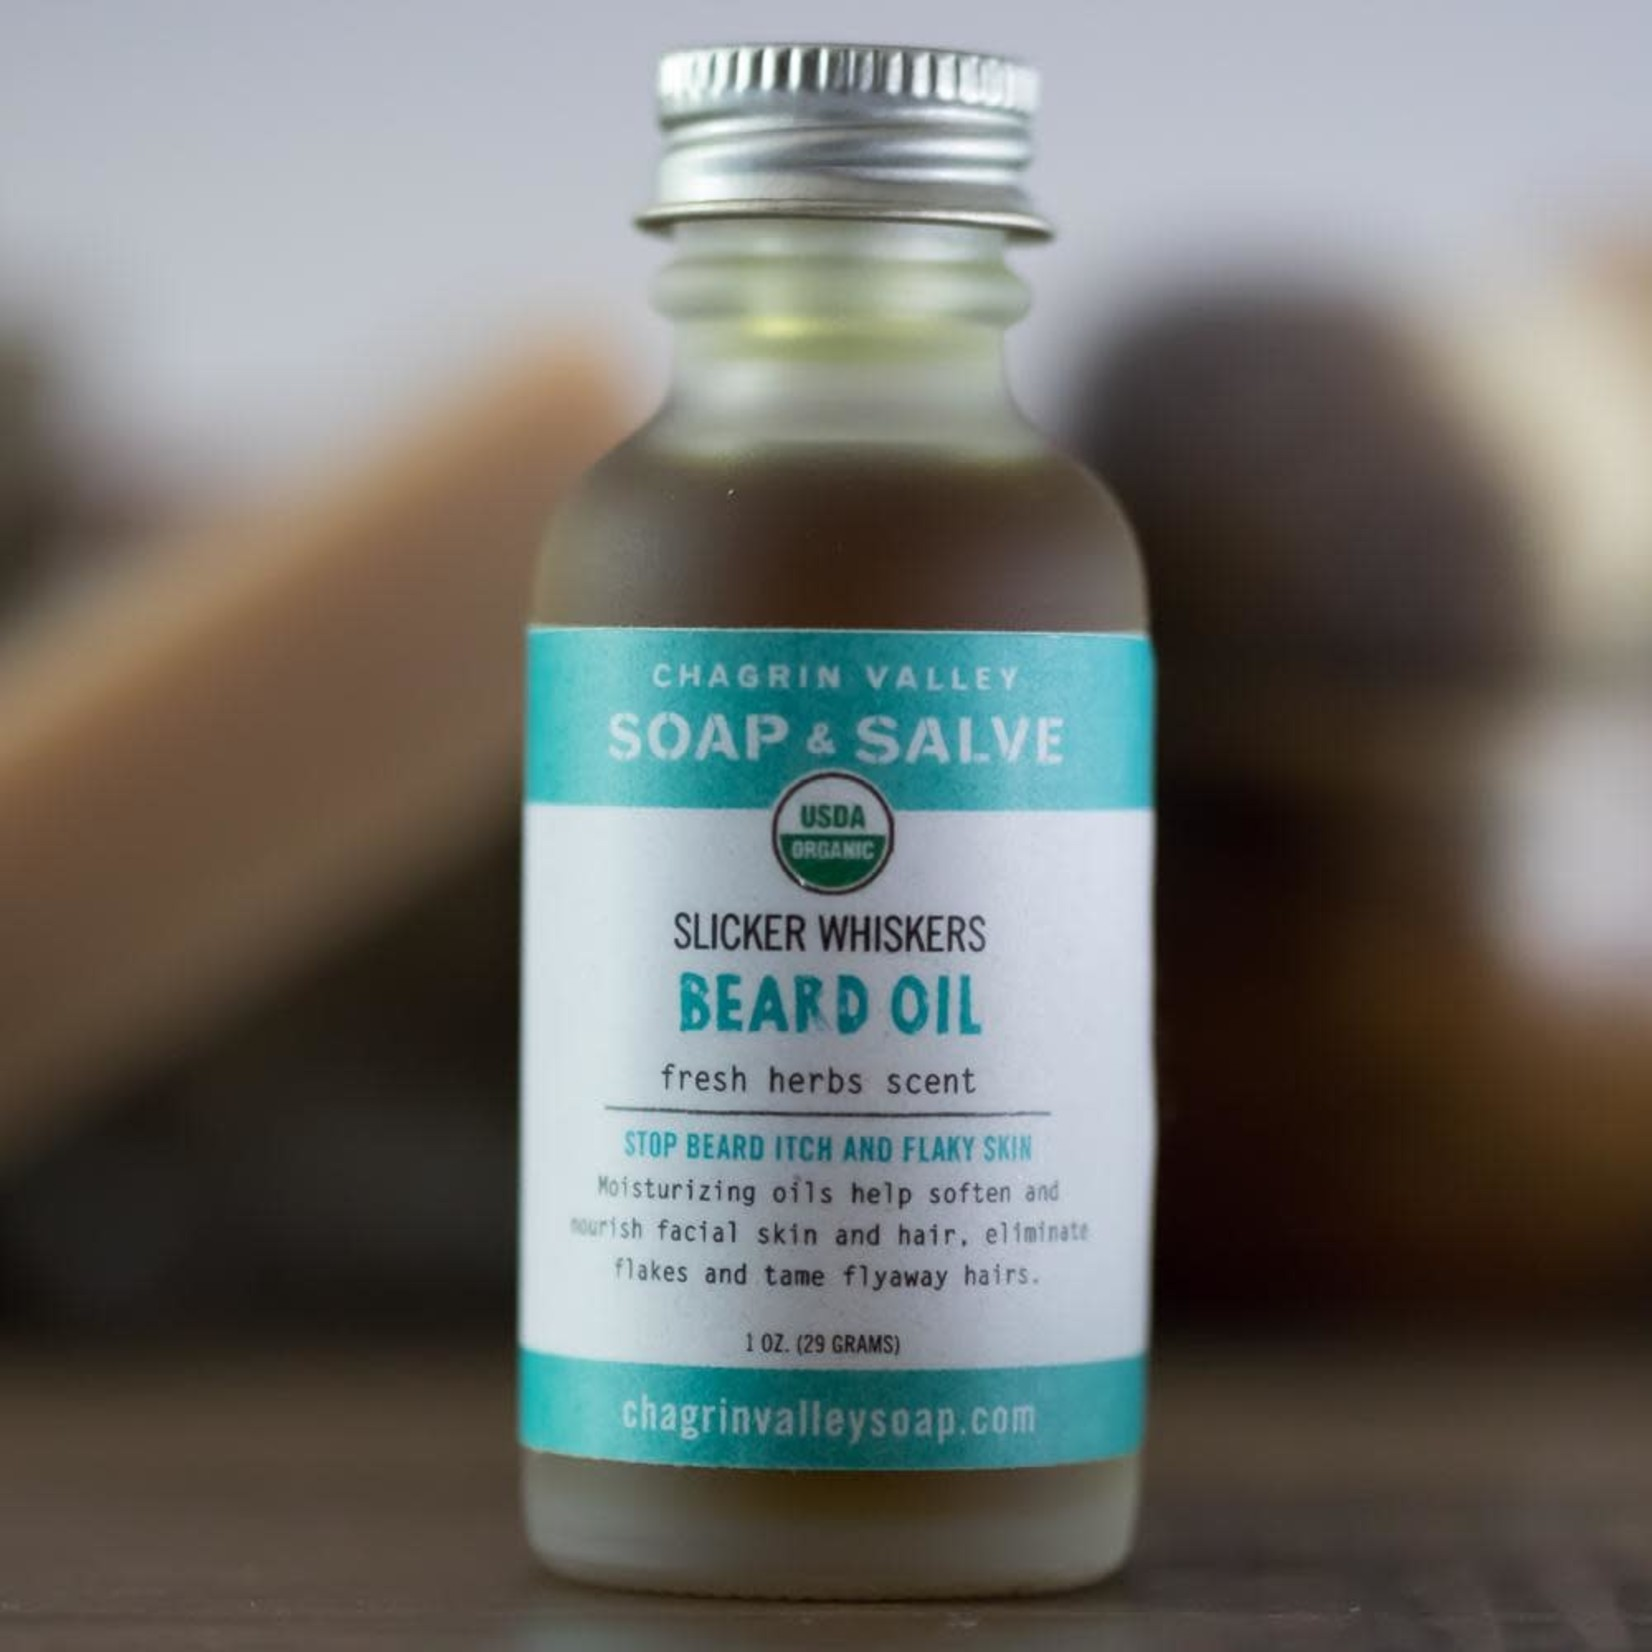 Chagrin Valley Soap and Salve Beard Oil Fresh Herbs Scent 1oz